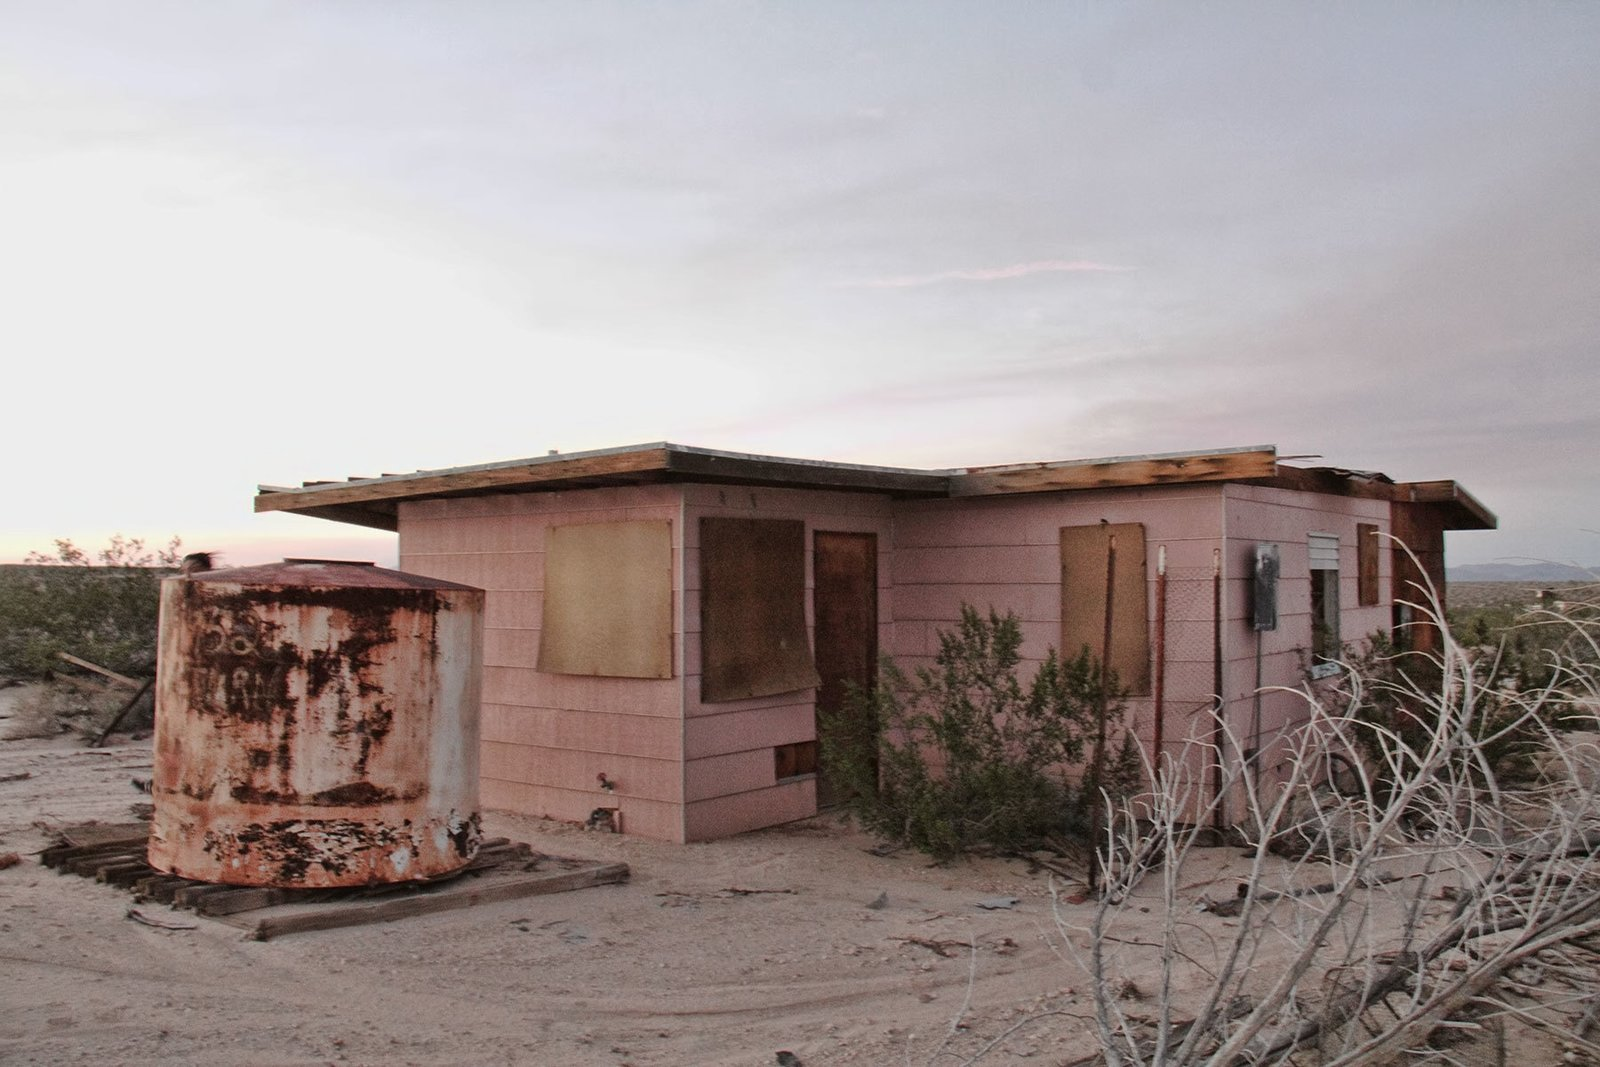 The condition of the home when the Smirkes purchased it in 2015.  Photo 1 of 21 in Experts Reveal the Top 10 Things to Consider Before Investing in a Fixer-Upper from A Couple Buy a Collapsing Cabin For $7K in Joshua Tree and Revamp it Into a Desert Oasis